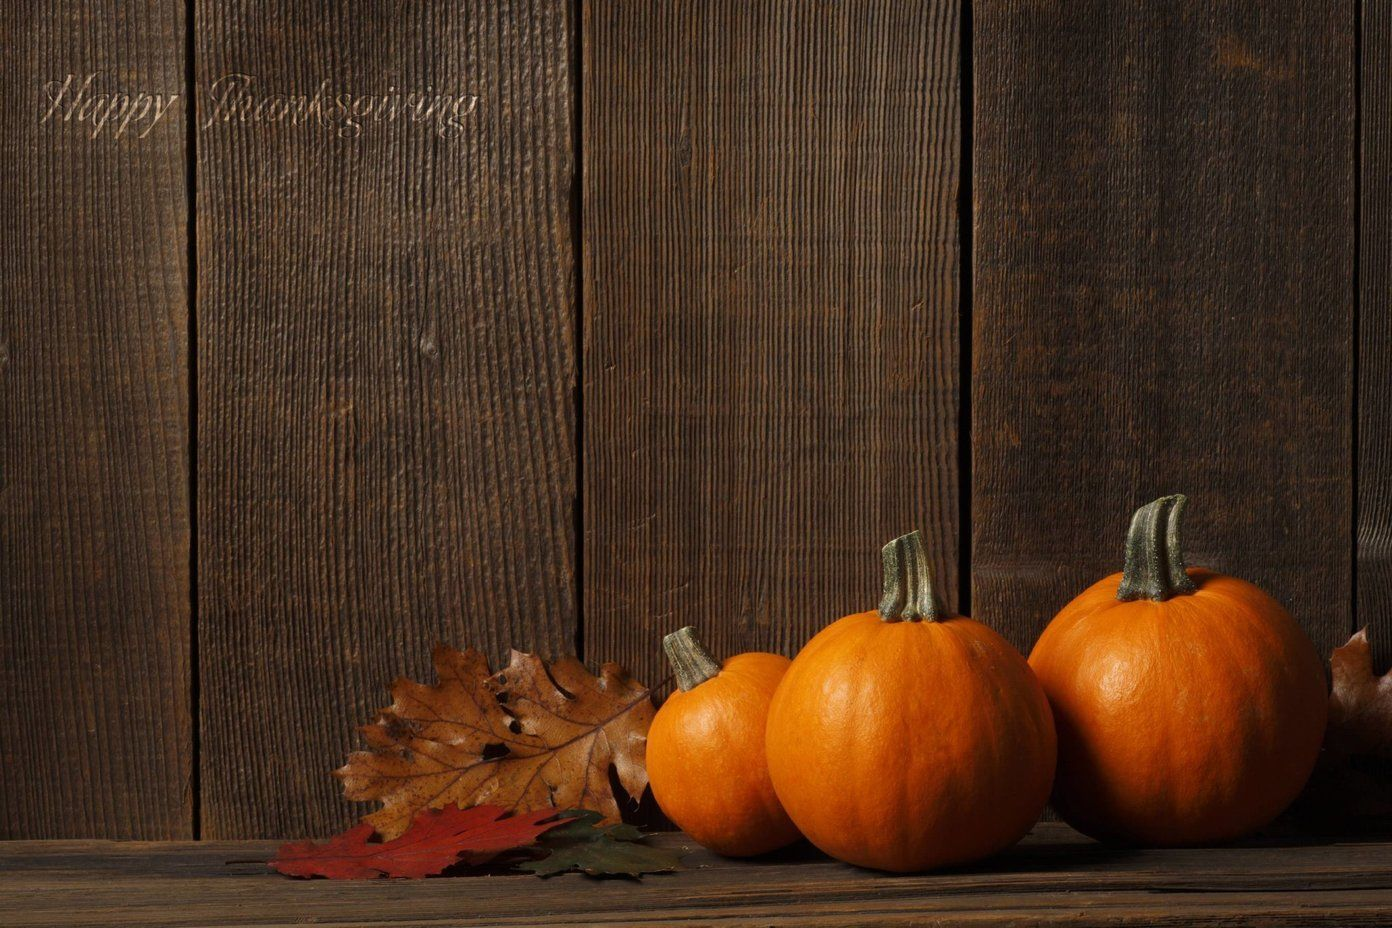 11 Cool Thanksgiving Wallpapers [HD] You Should Get Right Now